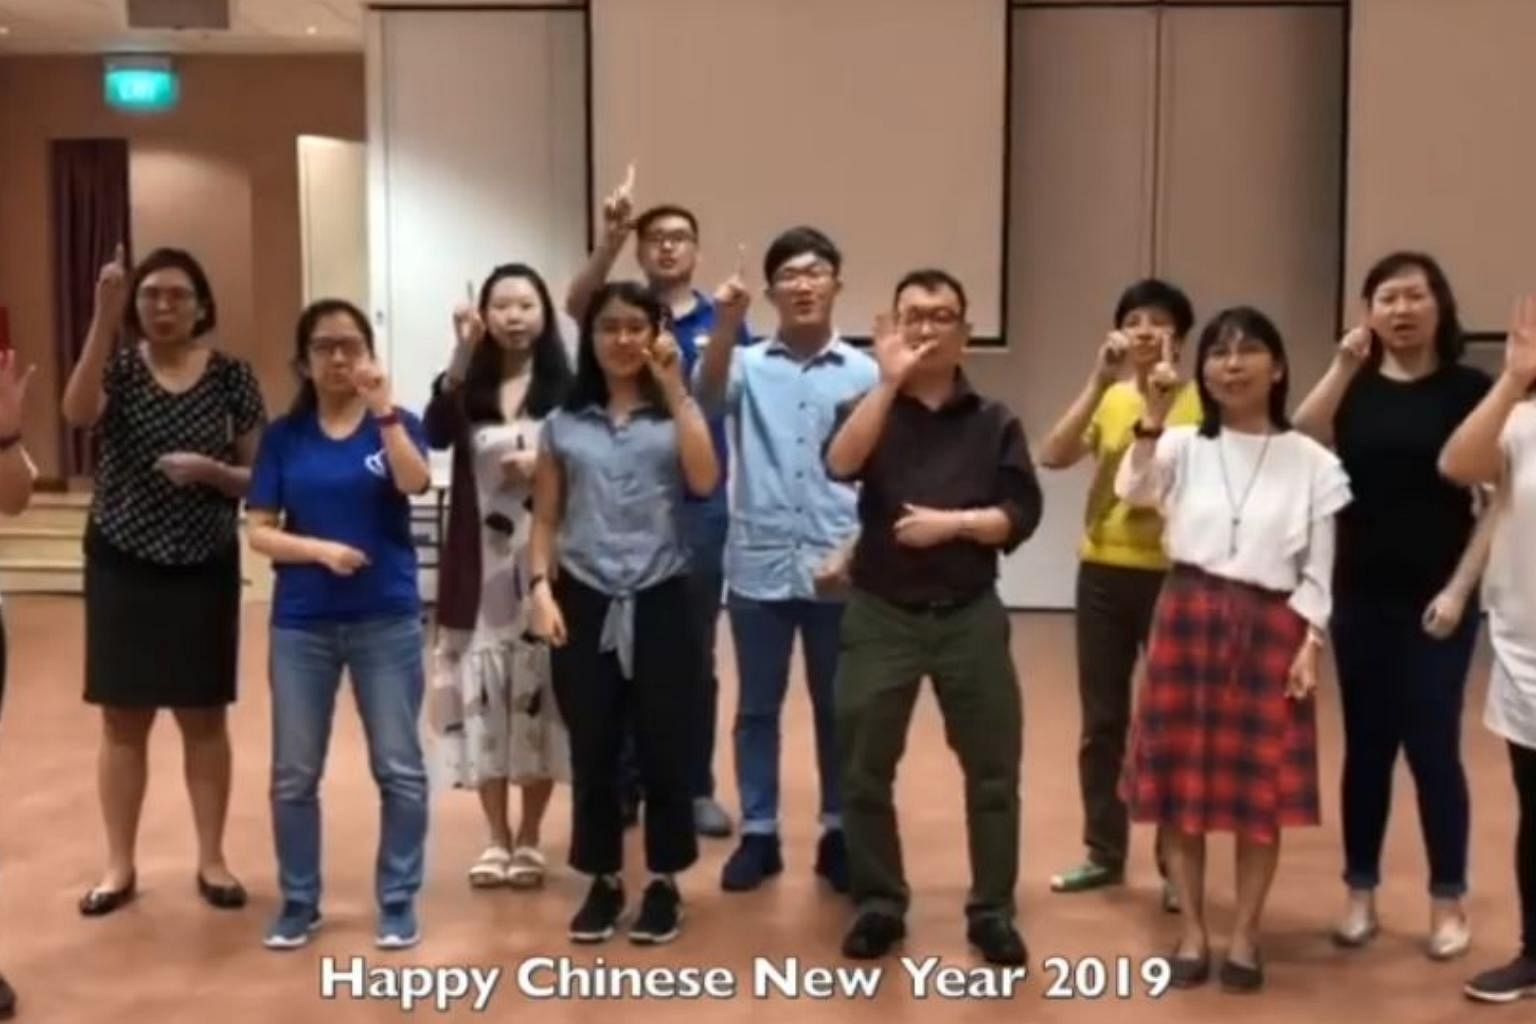 Chinese New Year: From reunion meals to greeting in sign language, here are 5 videos to usher in the Year of the Pig